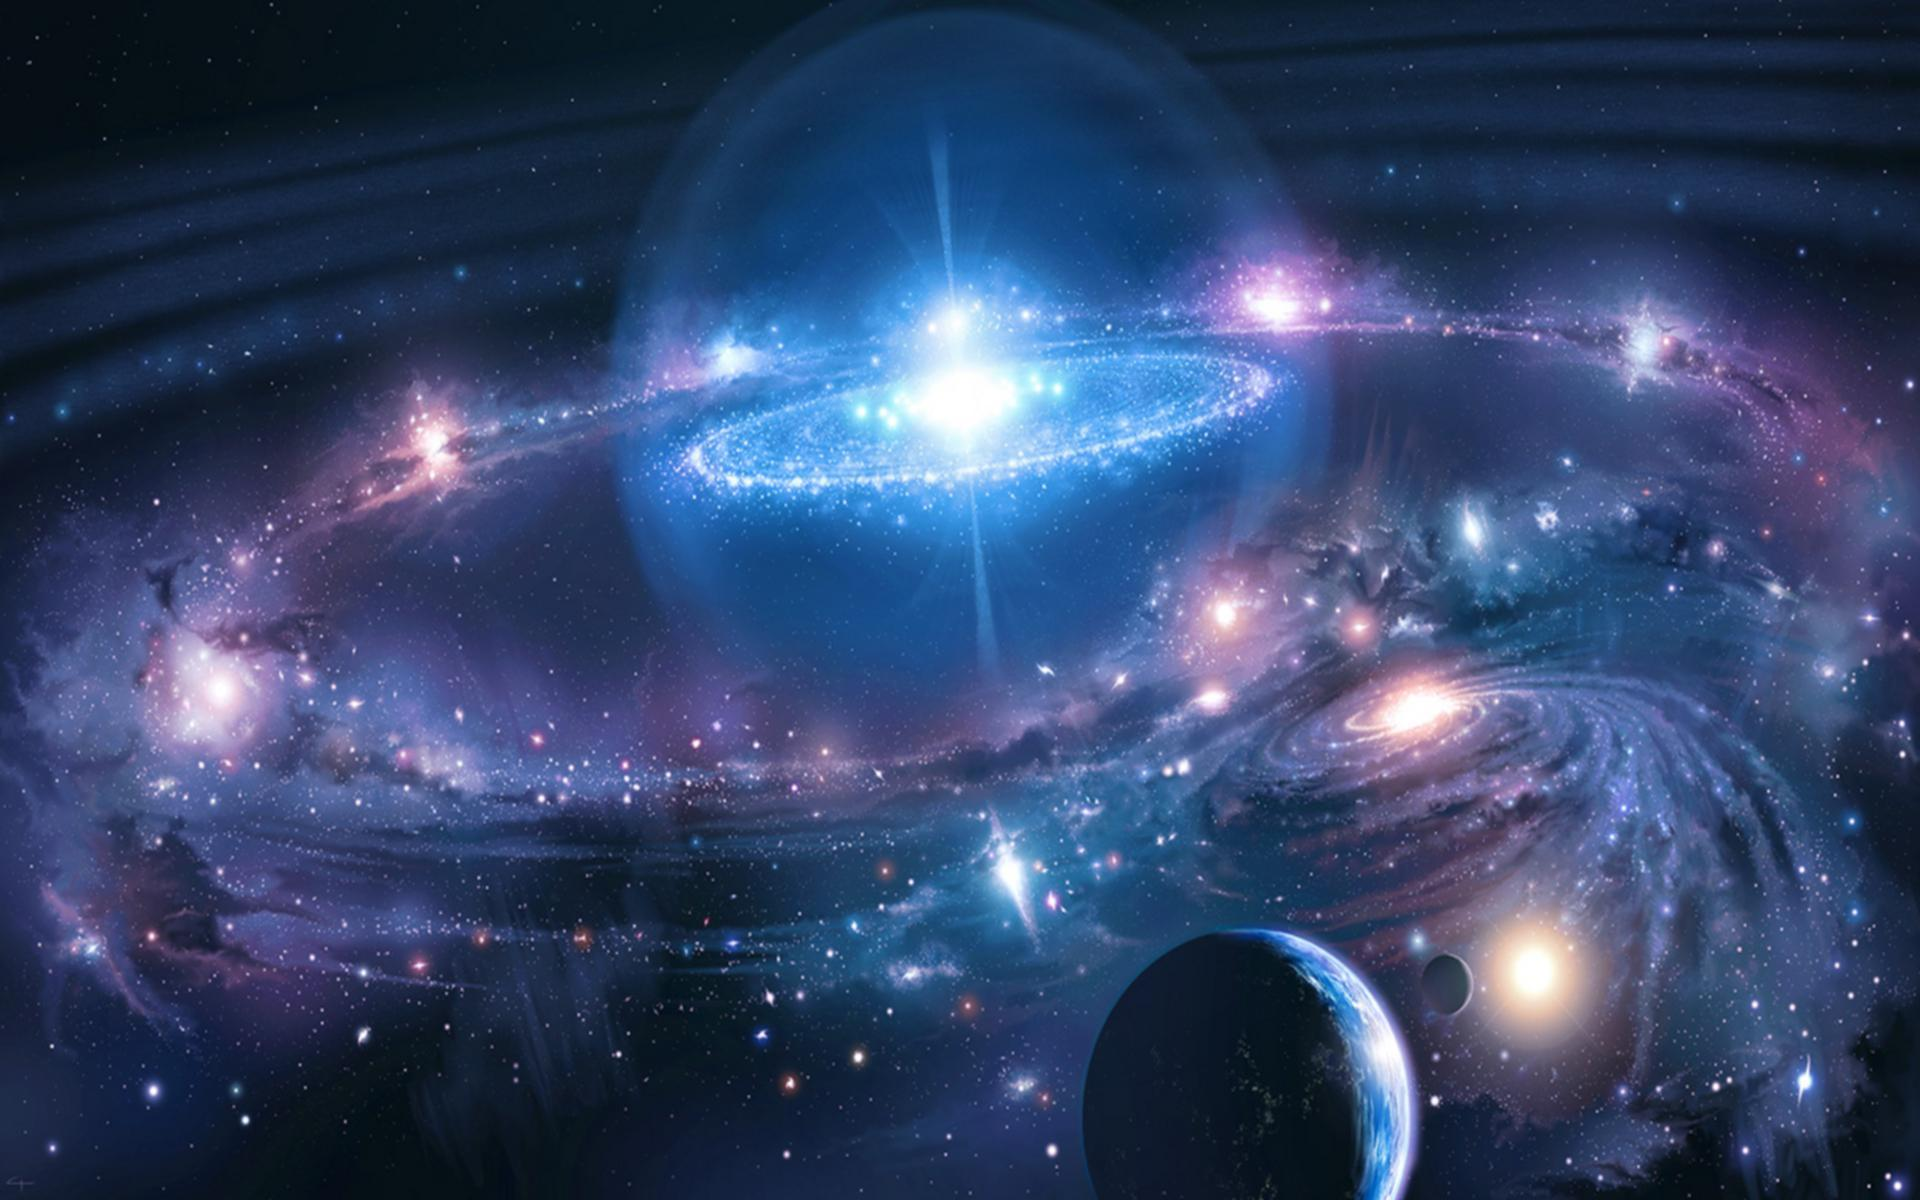 outer-space-stars-galaxies-planets-background-images